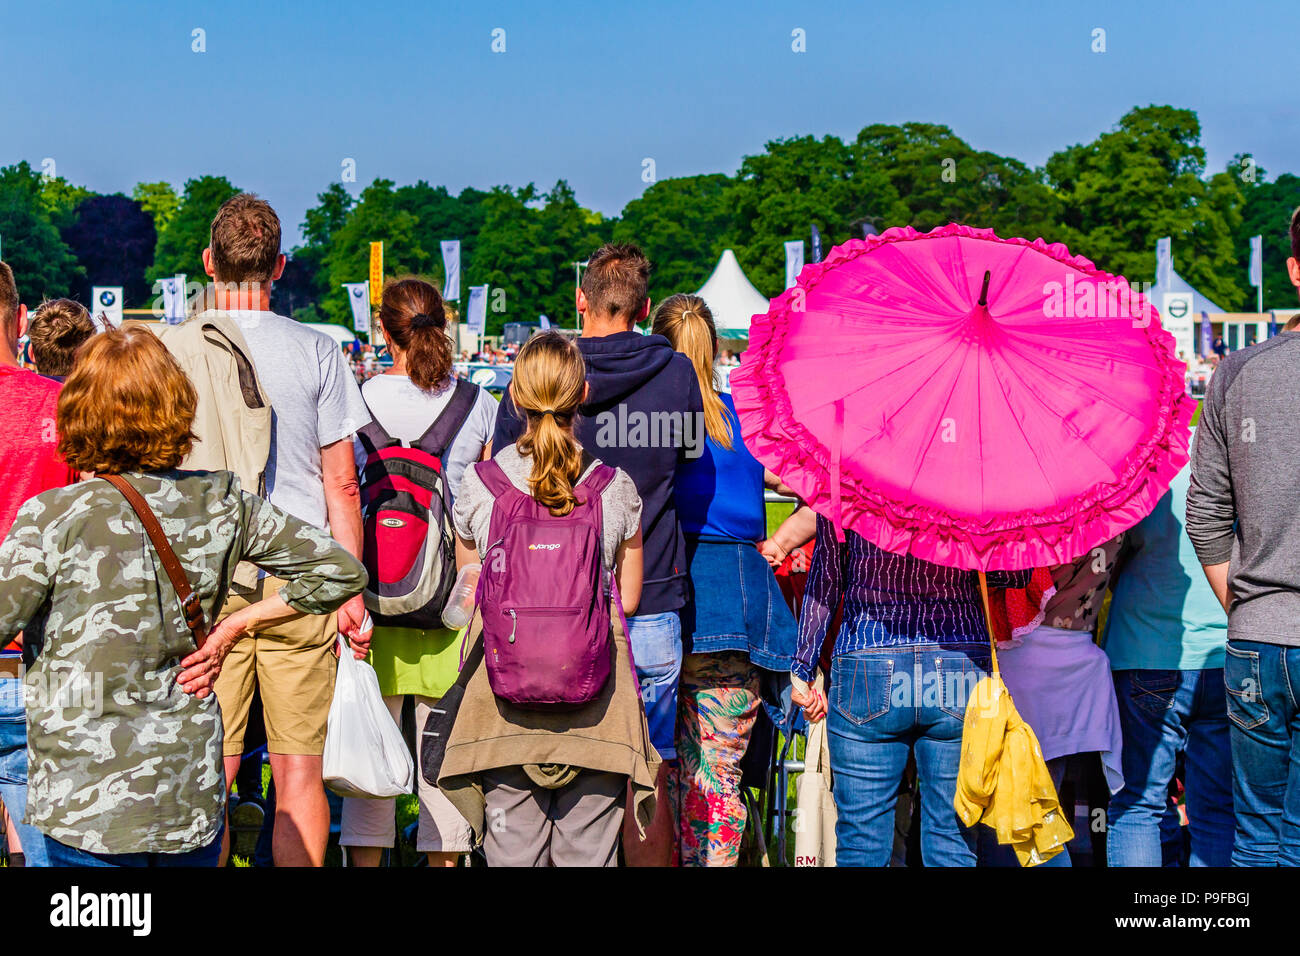 Behind summery crowd watching the arena at the Northumberland County Show, Stocksfield, Northumberland, UK. - Stock Image